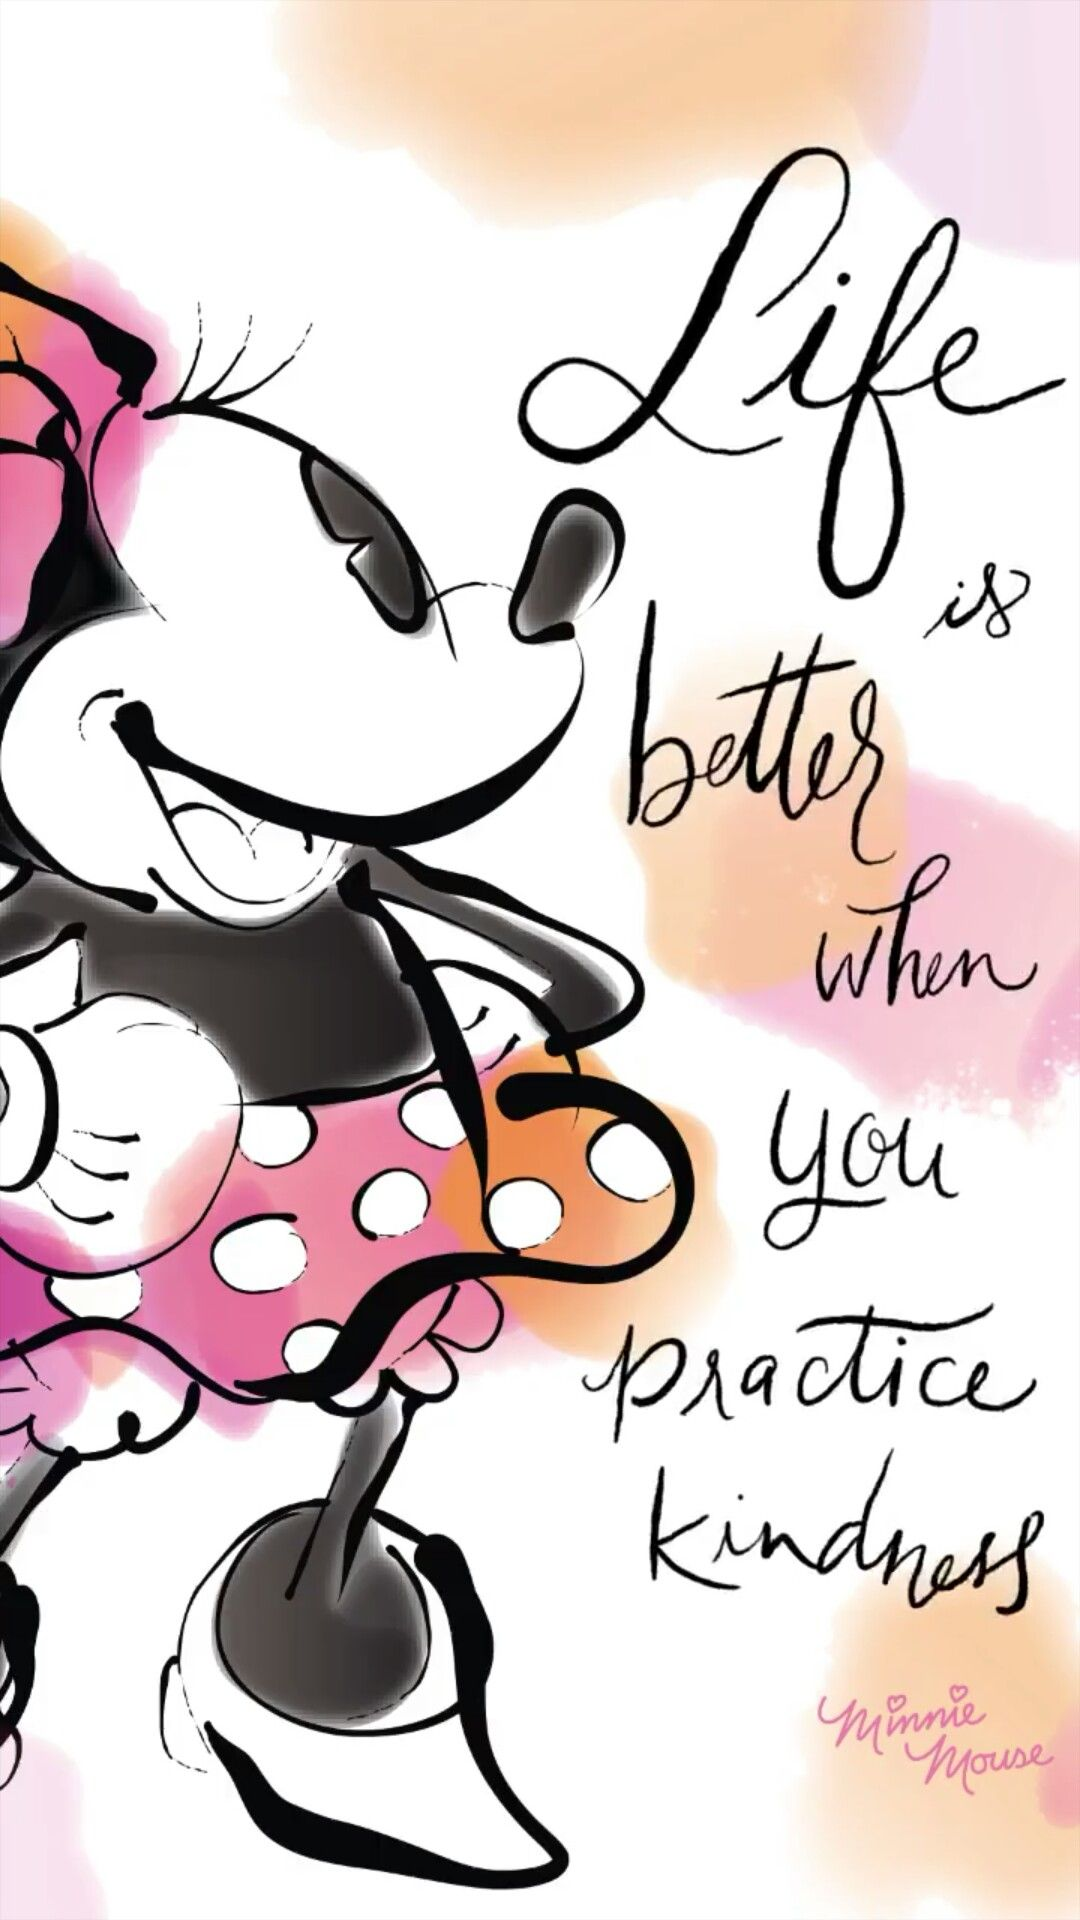 Pin by liza.art シ on iphone wallpapers Mickey mouse